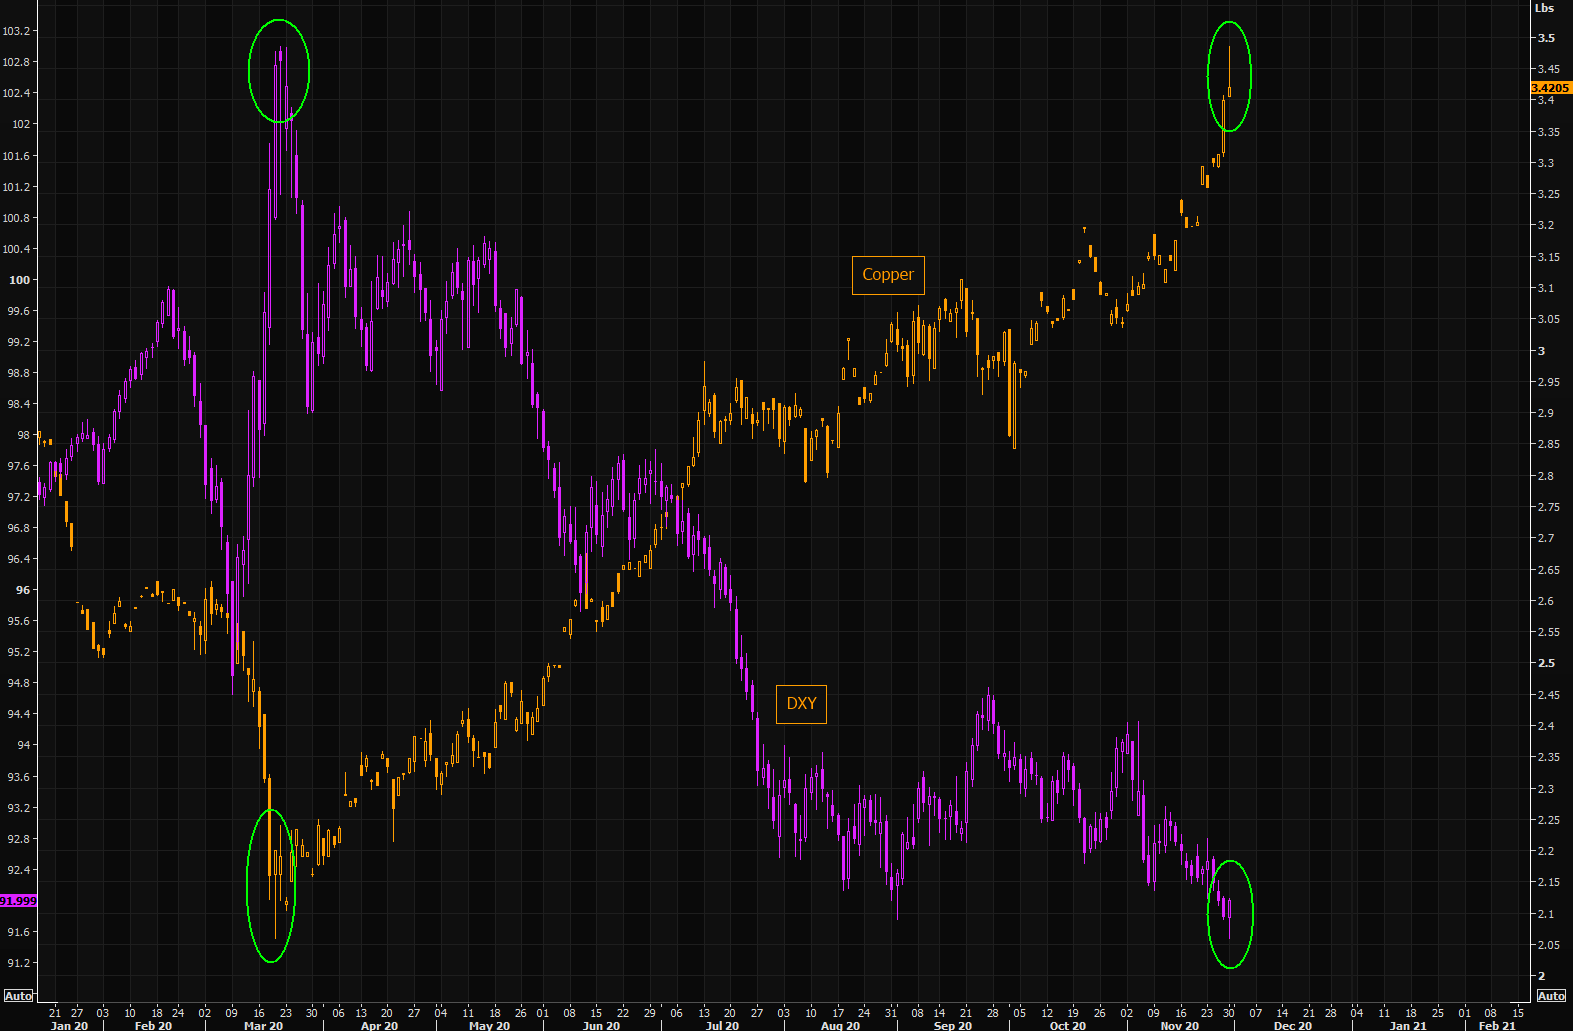 The question of the day - did DXY and copper both reverse today?